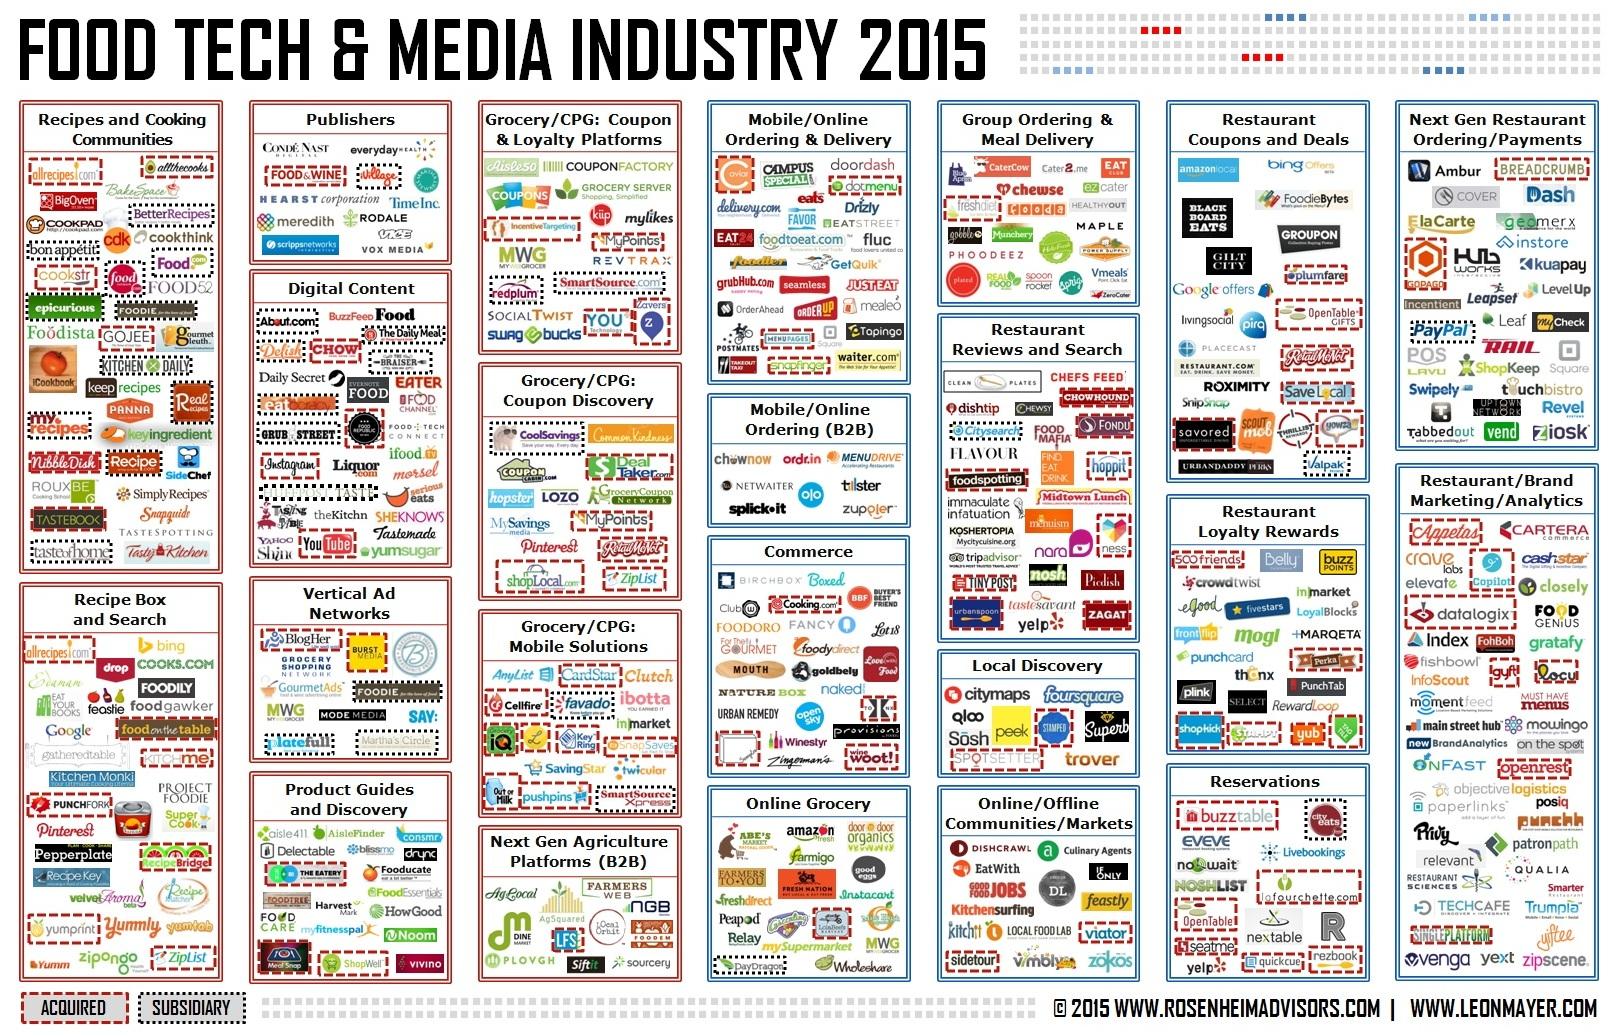 Food Tech and Media Industry 2015 - Rosenheim Advisors and Leon Mayer